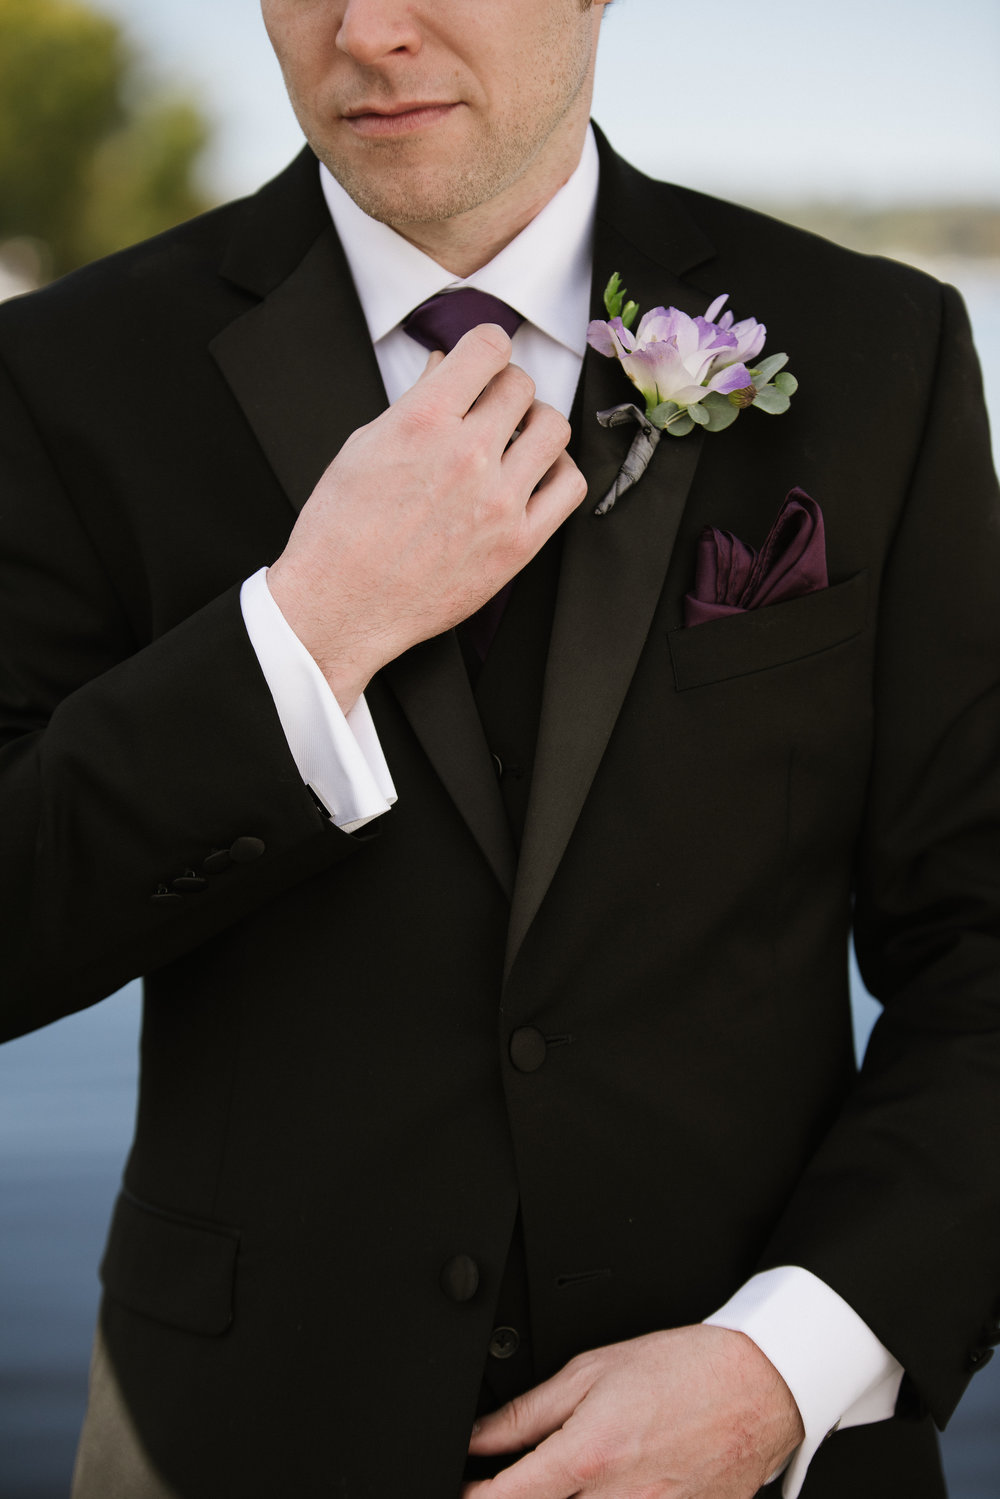 groom with purple boutonniere and black suit with eggplant tie | Dillinger Studios Minneapolis Photographer | Mexican American fusion wedding | Sixpence Events & Planning Minnesota wedding planner .jpg